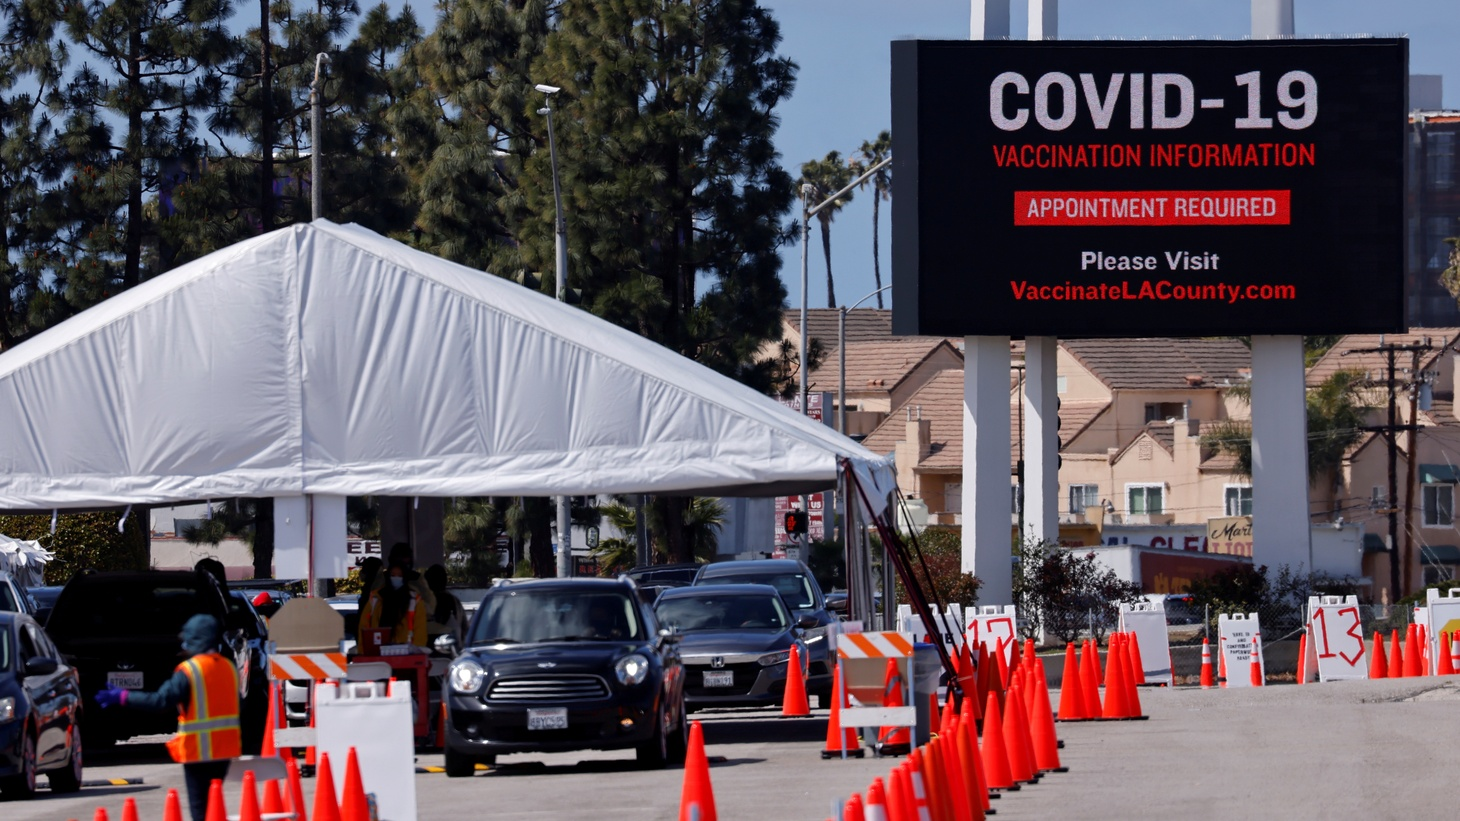 Cars line up in this drive-thru vaccination site during the outbreak of the coronavirus disease (COVID-19) in Inglewood, California, U.S., March 15, 2021.